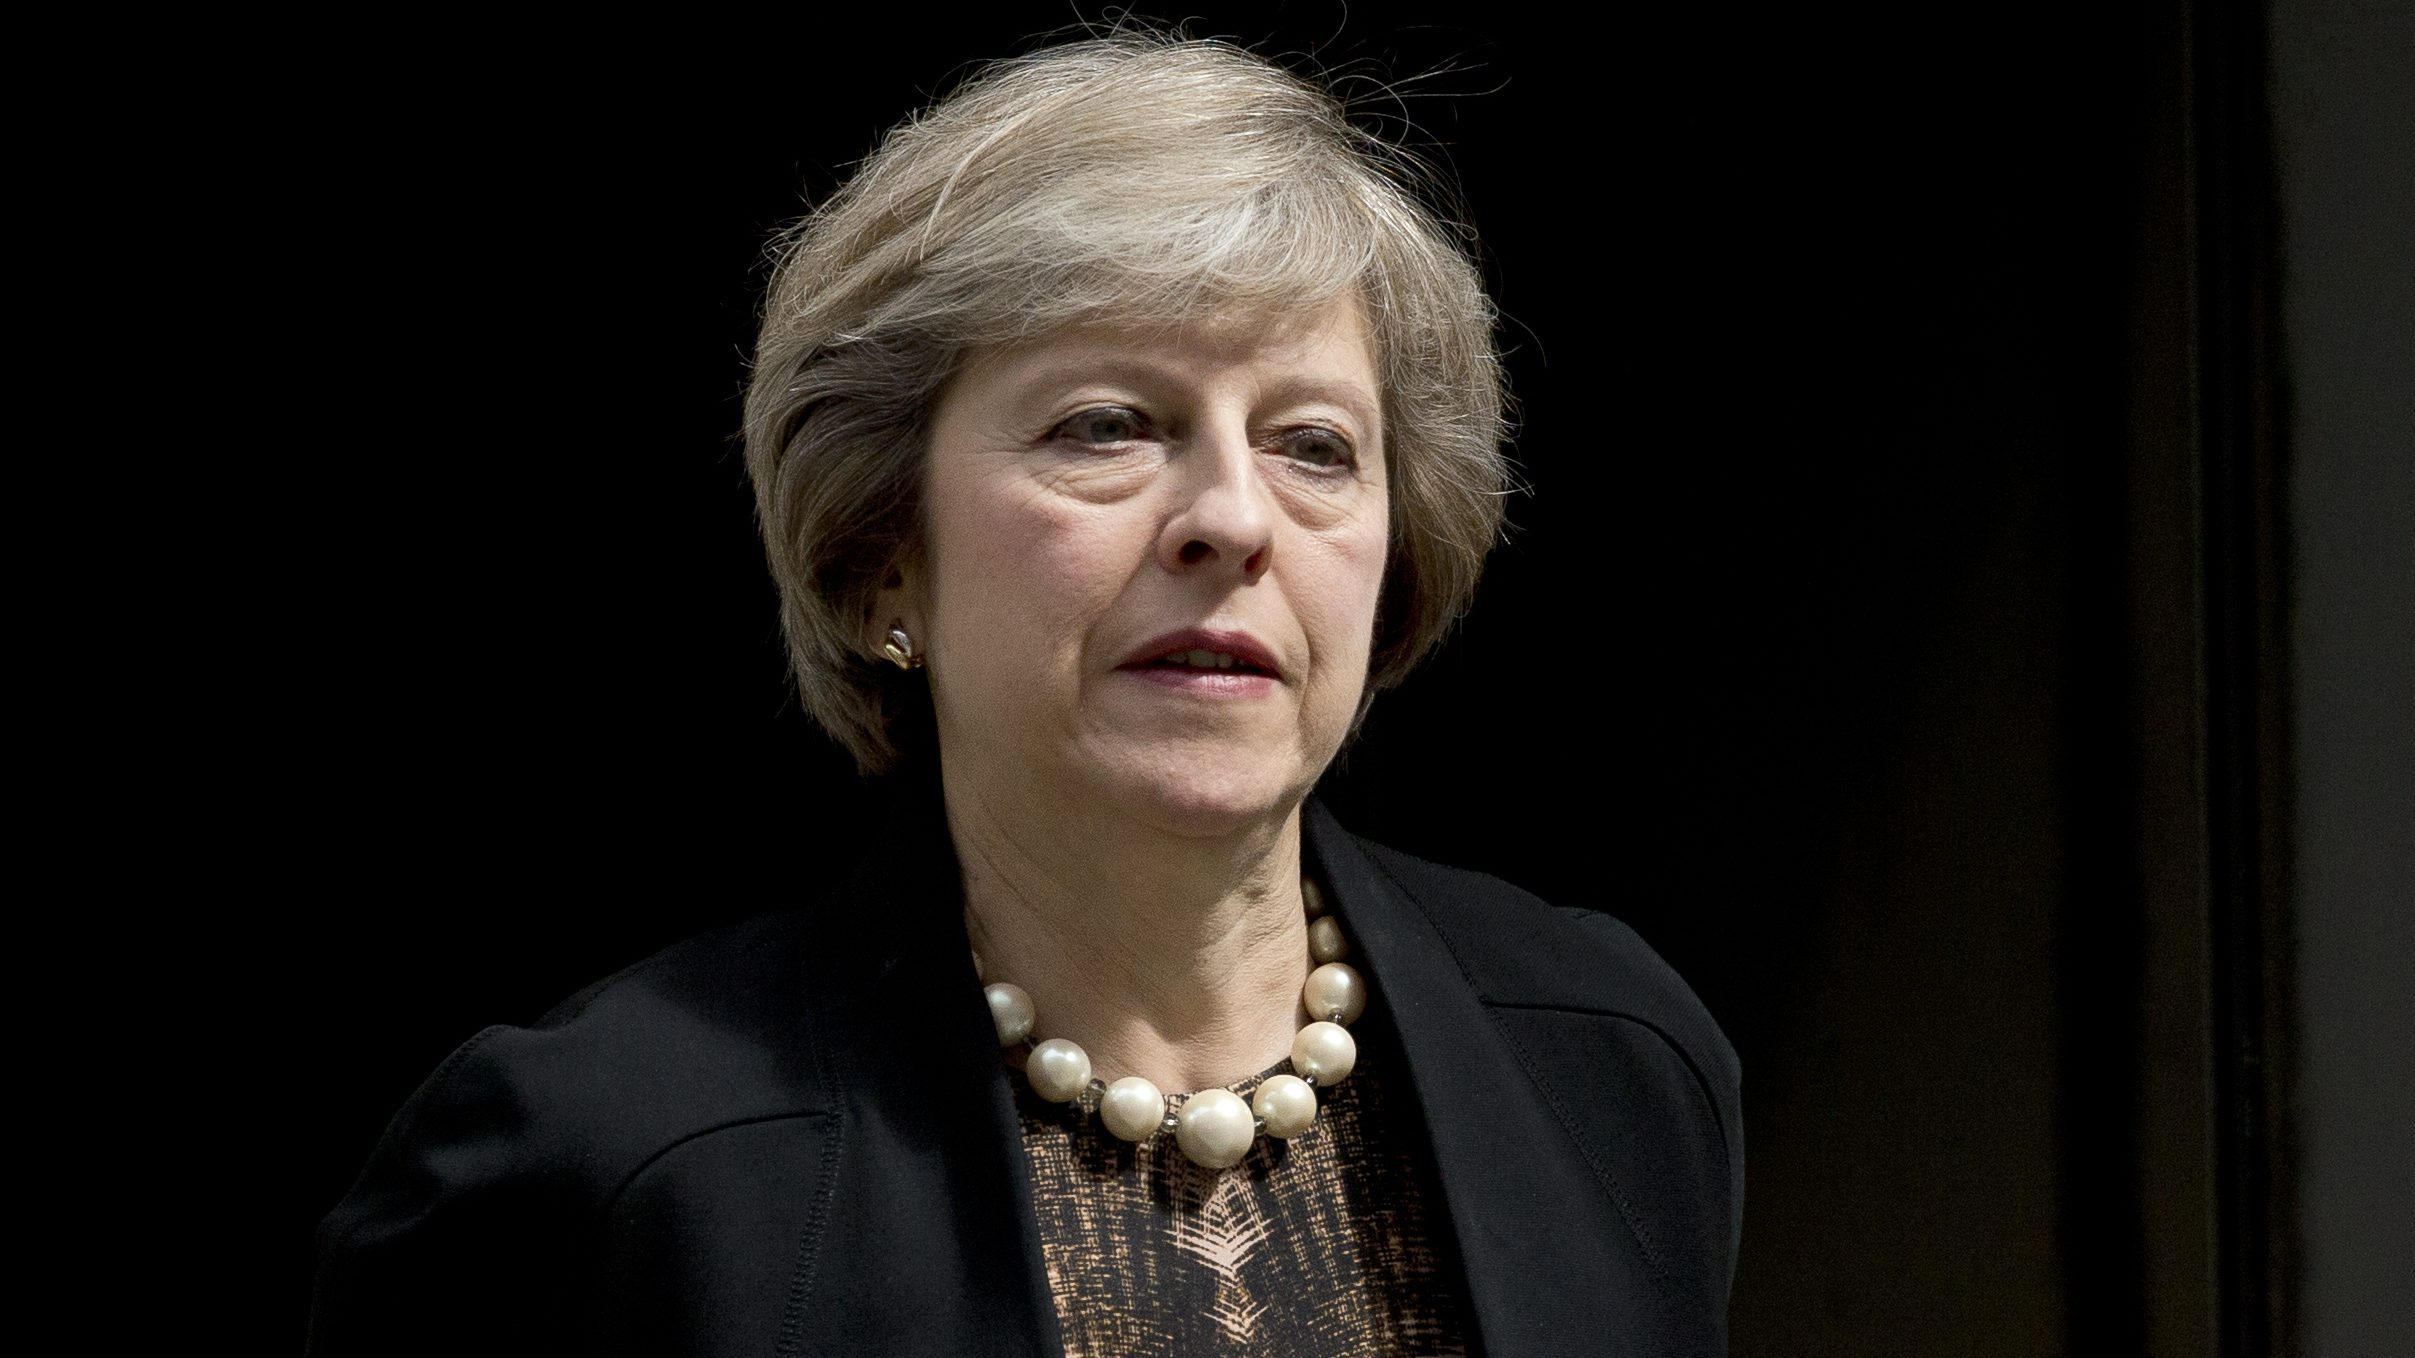 British Home Secretary and leadership candidate for Britain's ruling Conservative Party Theresa May leaves after attending a cabinet meeting at 10 Downing Street, in London, Tuesday, July 5, 2016. British Prime Minister David Cameron resigned on June 24 after Britain voted to leave the European Union in a referendum. (AP Photo/Matt Dunham)